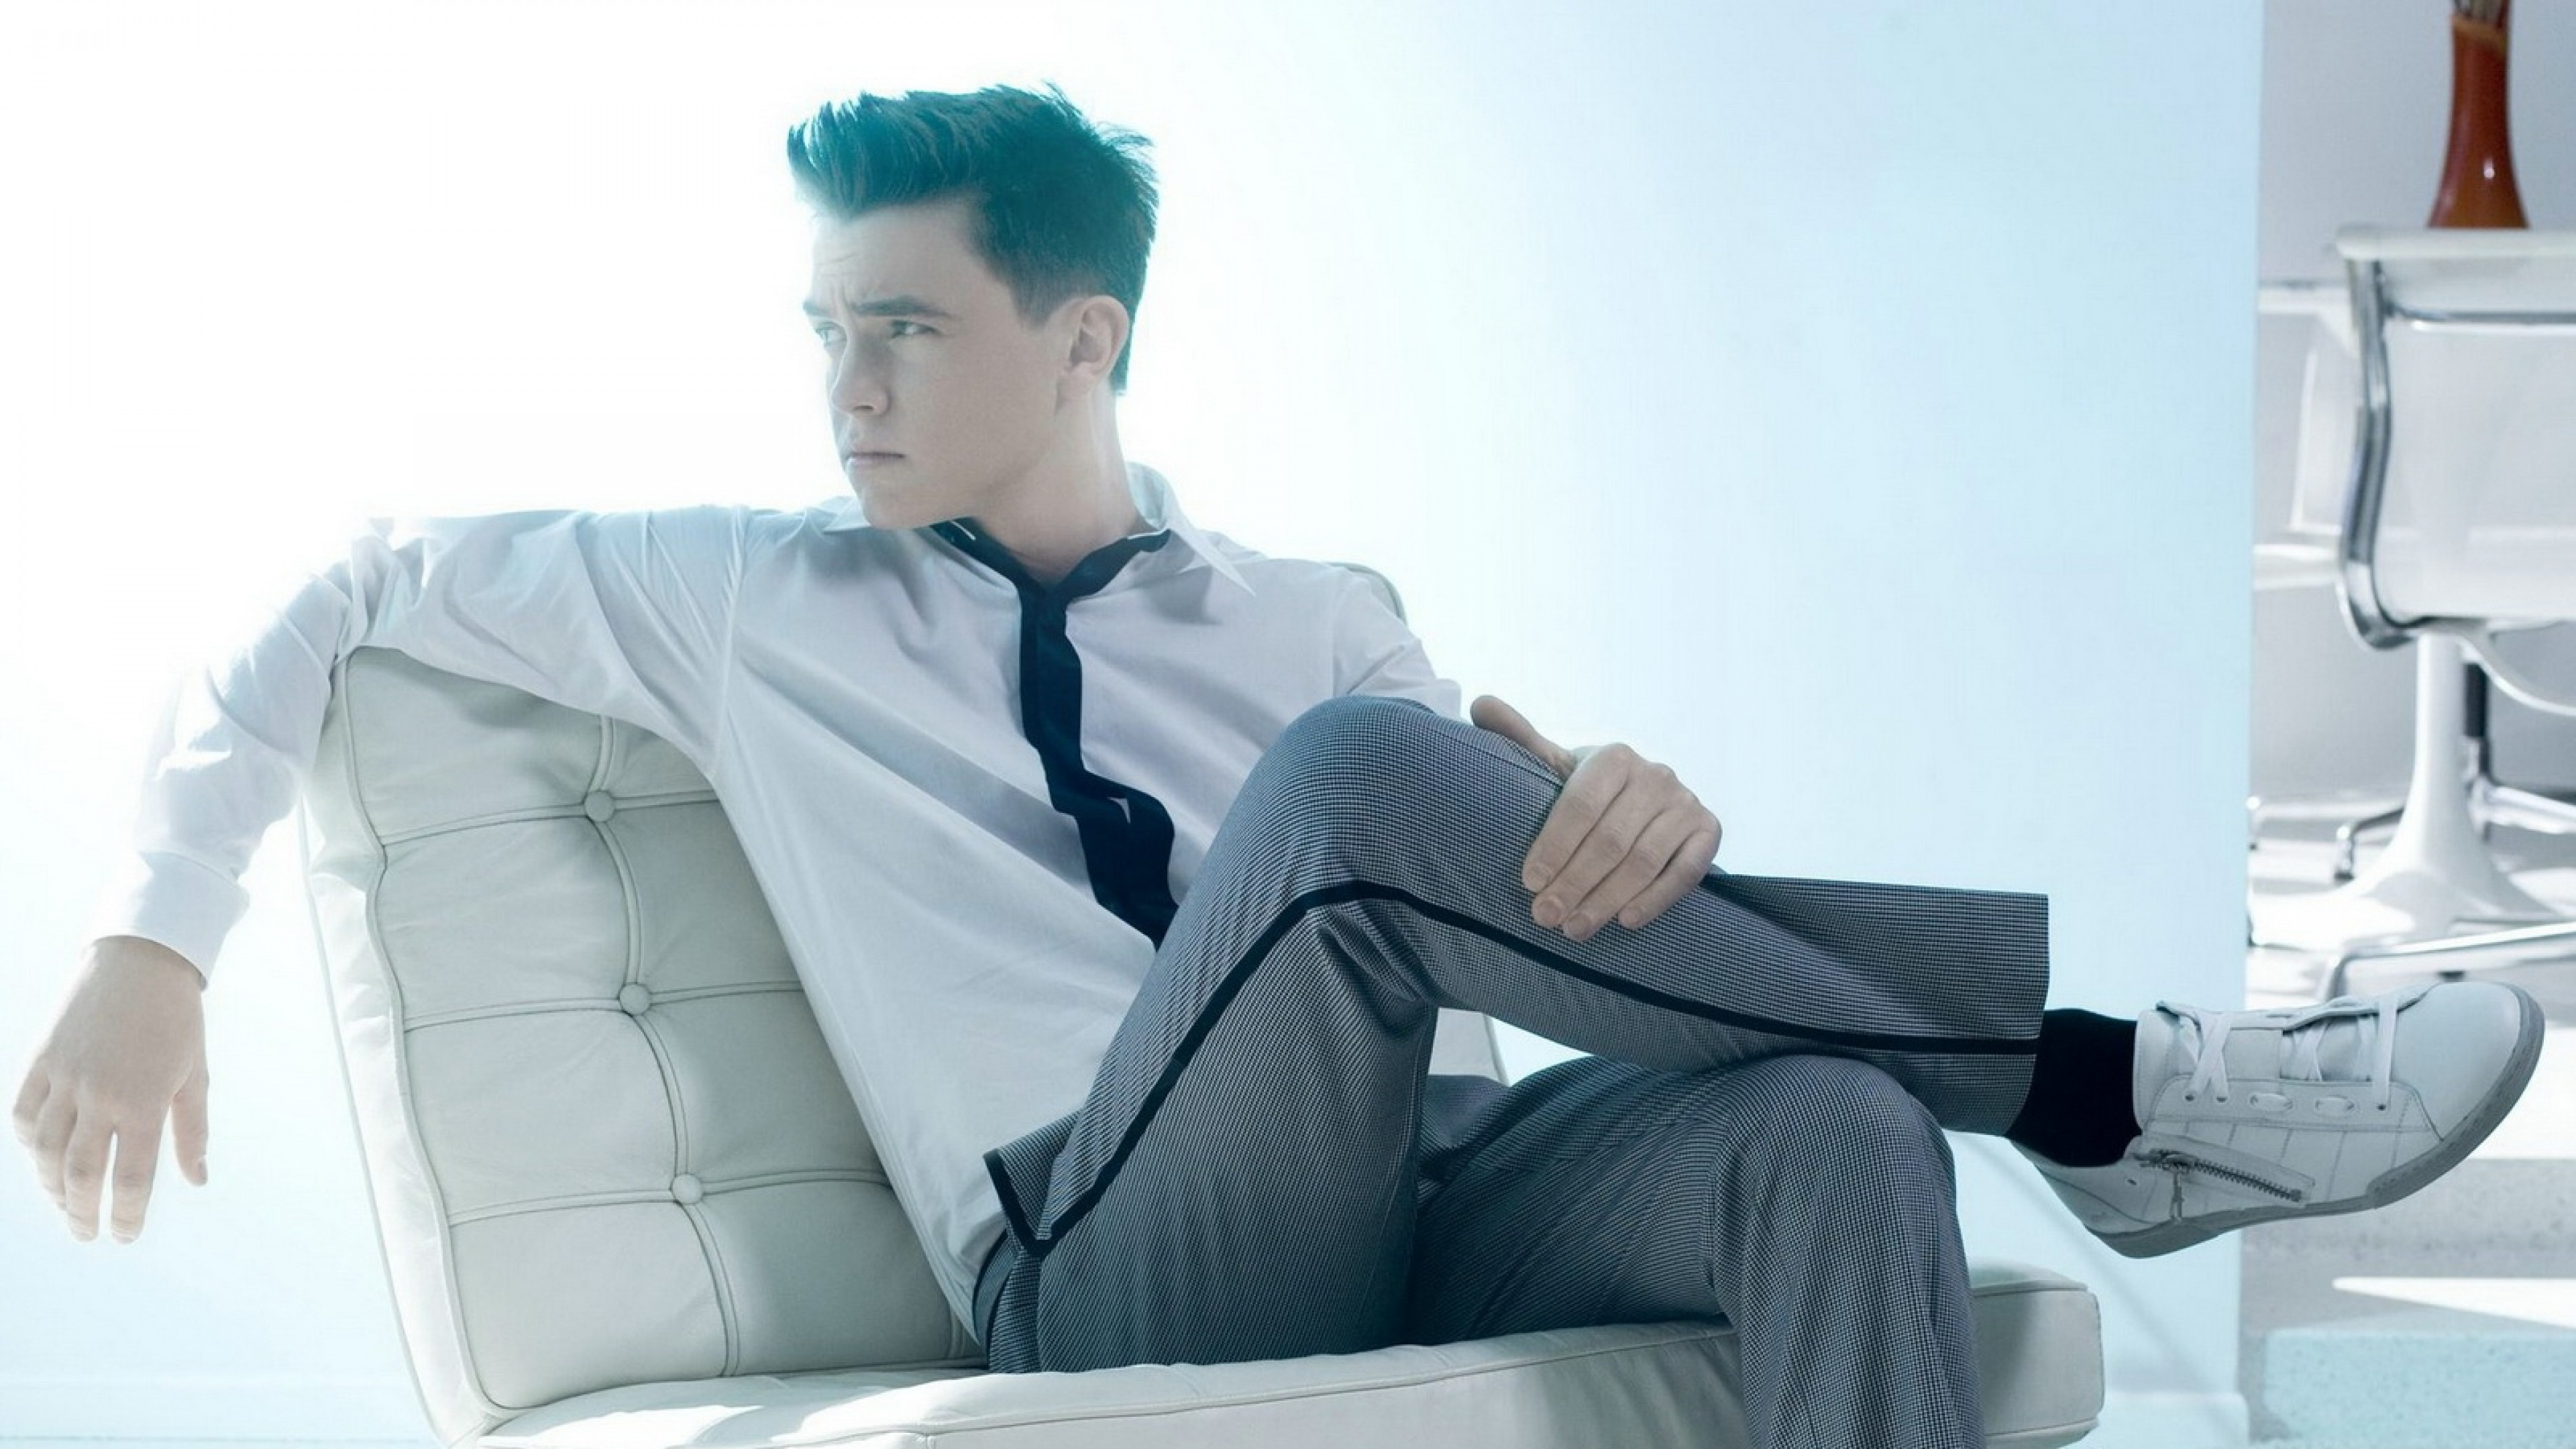 3840x2160  Wallpaper jesse mccartney, guy, pants, shirt, chair